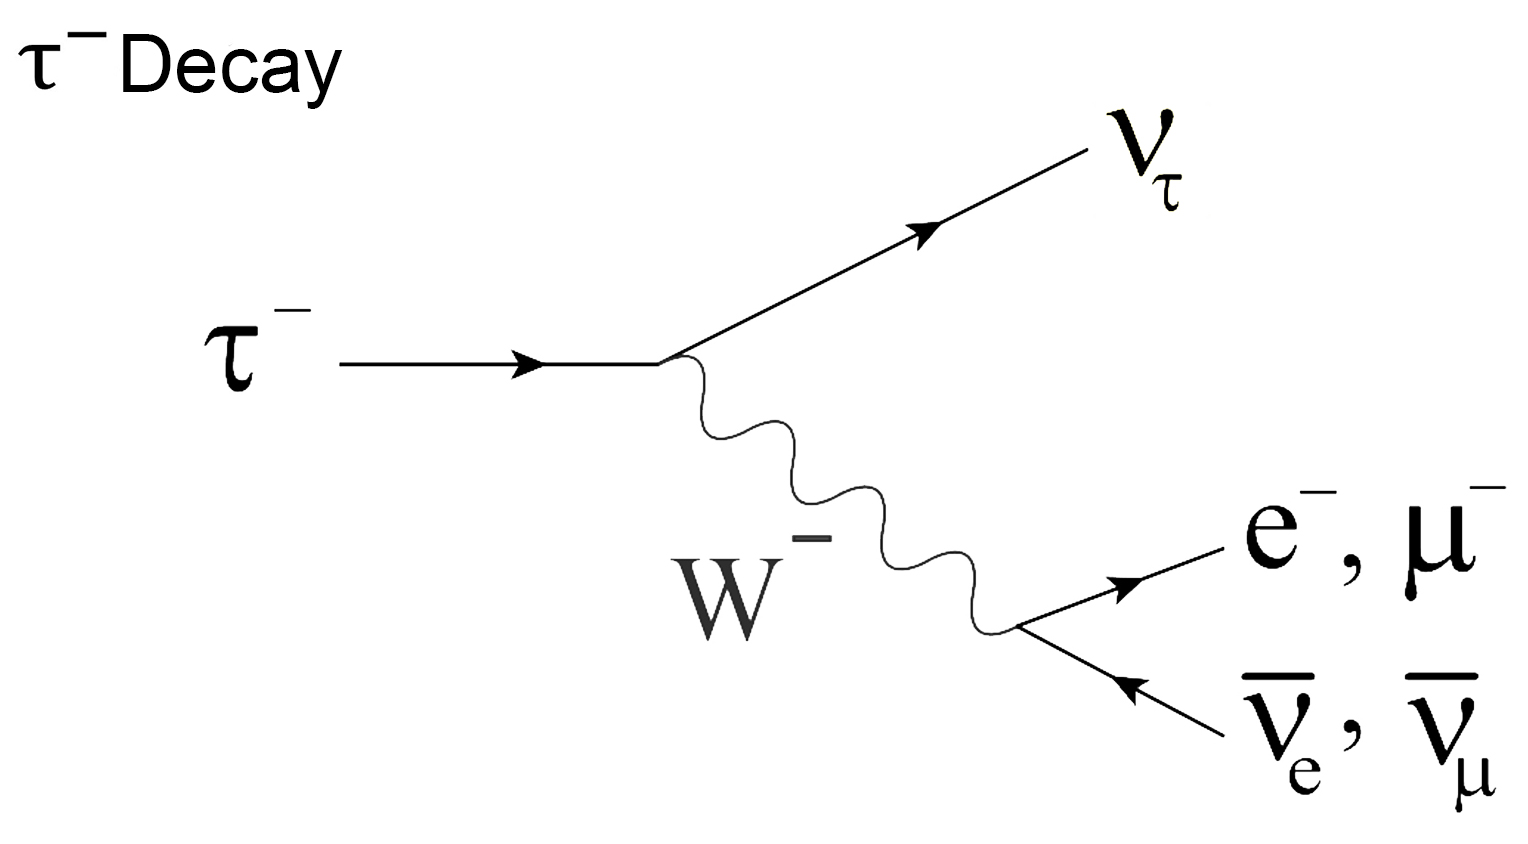 Feynman-diagram-of-tau-particle-decay